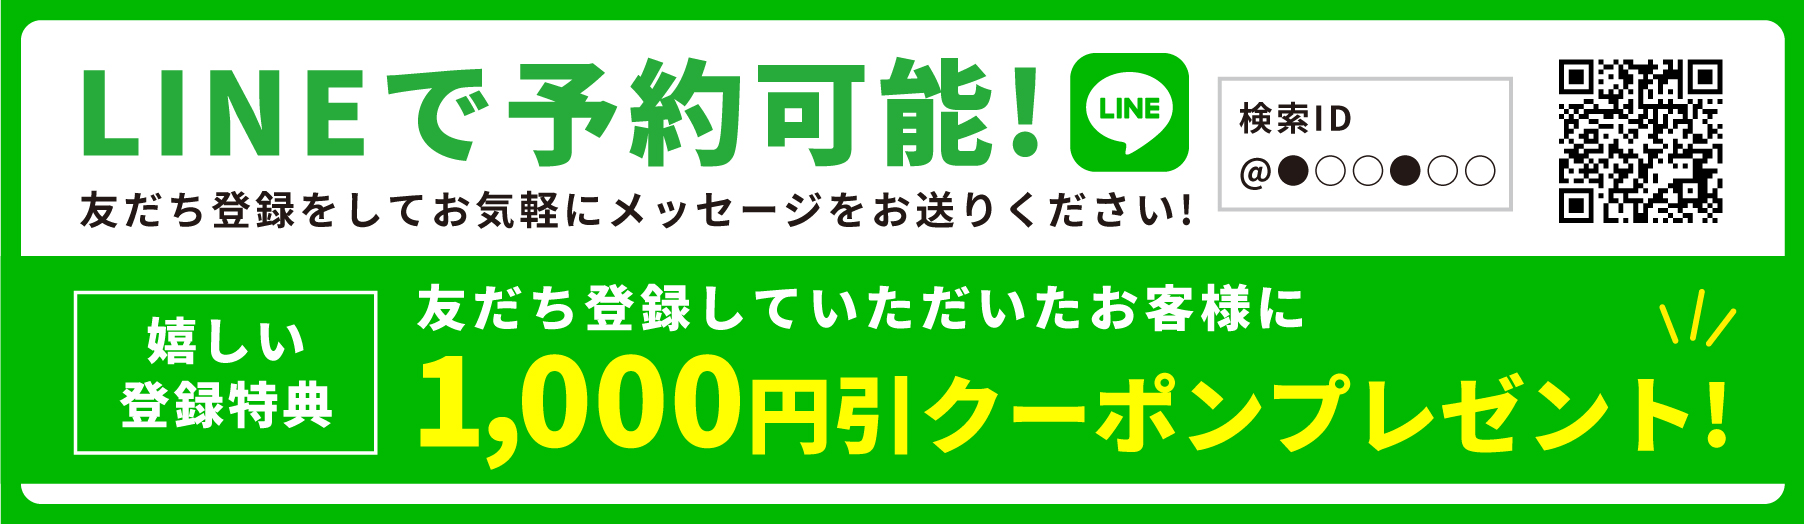 Tirebox LINE友達登録